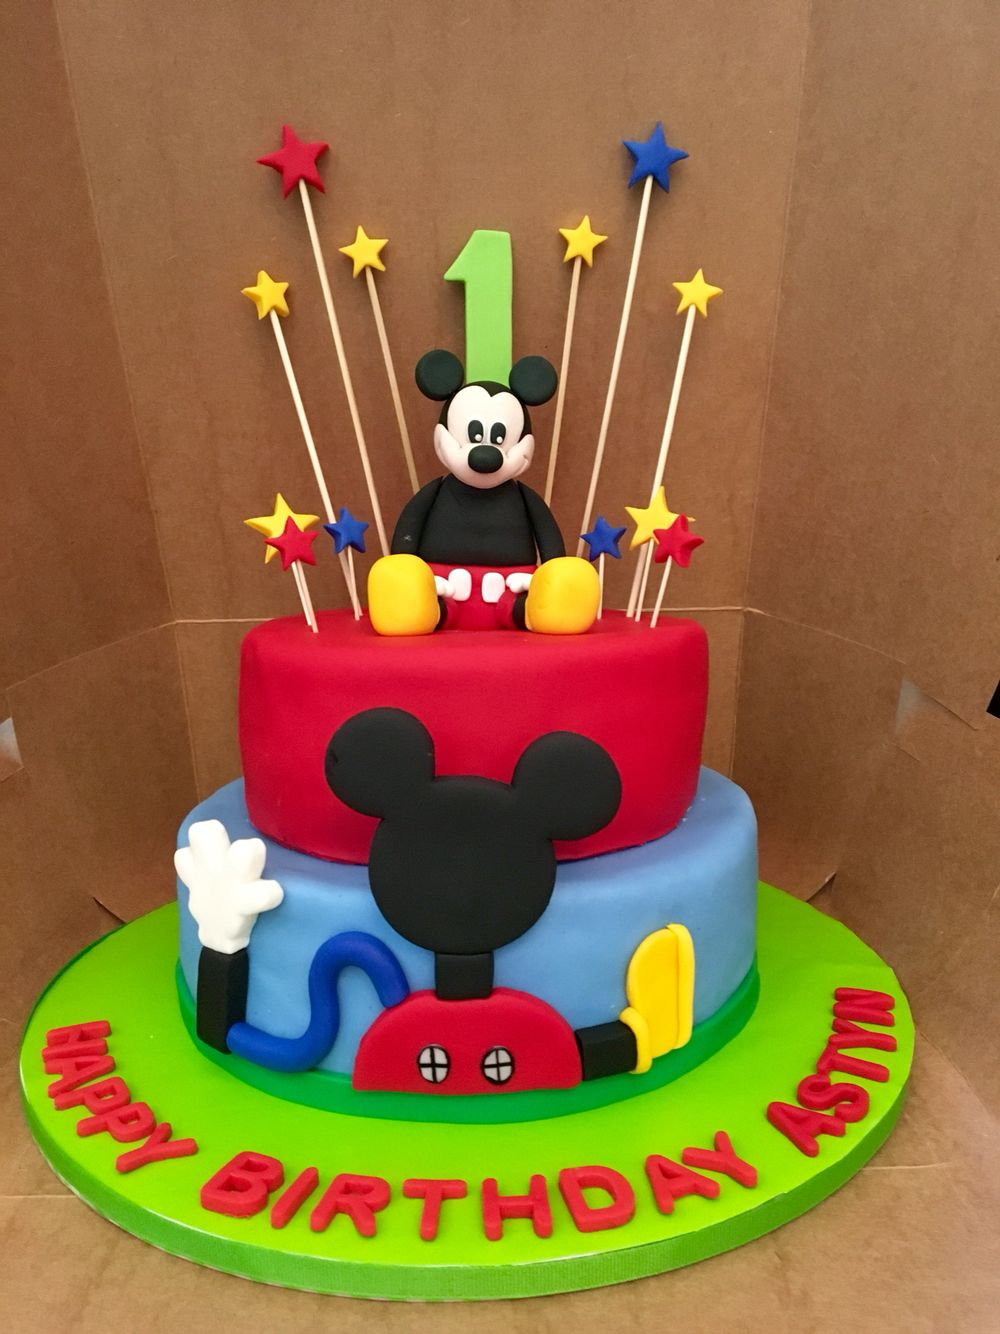 Superb Birthday Cake Pictures 1 Year Old Boy The Cake Boutique Personalised Birthday Cards Veneteletsinfo